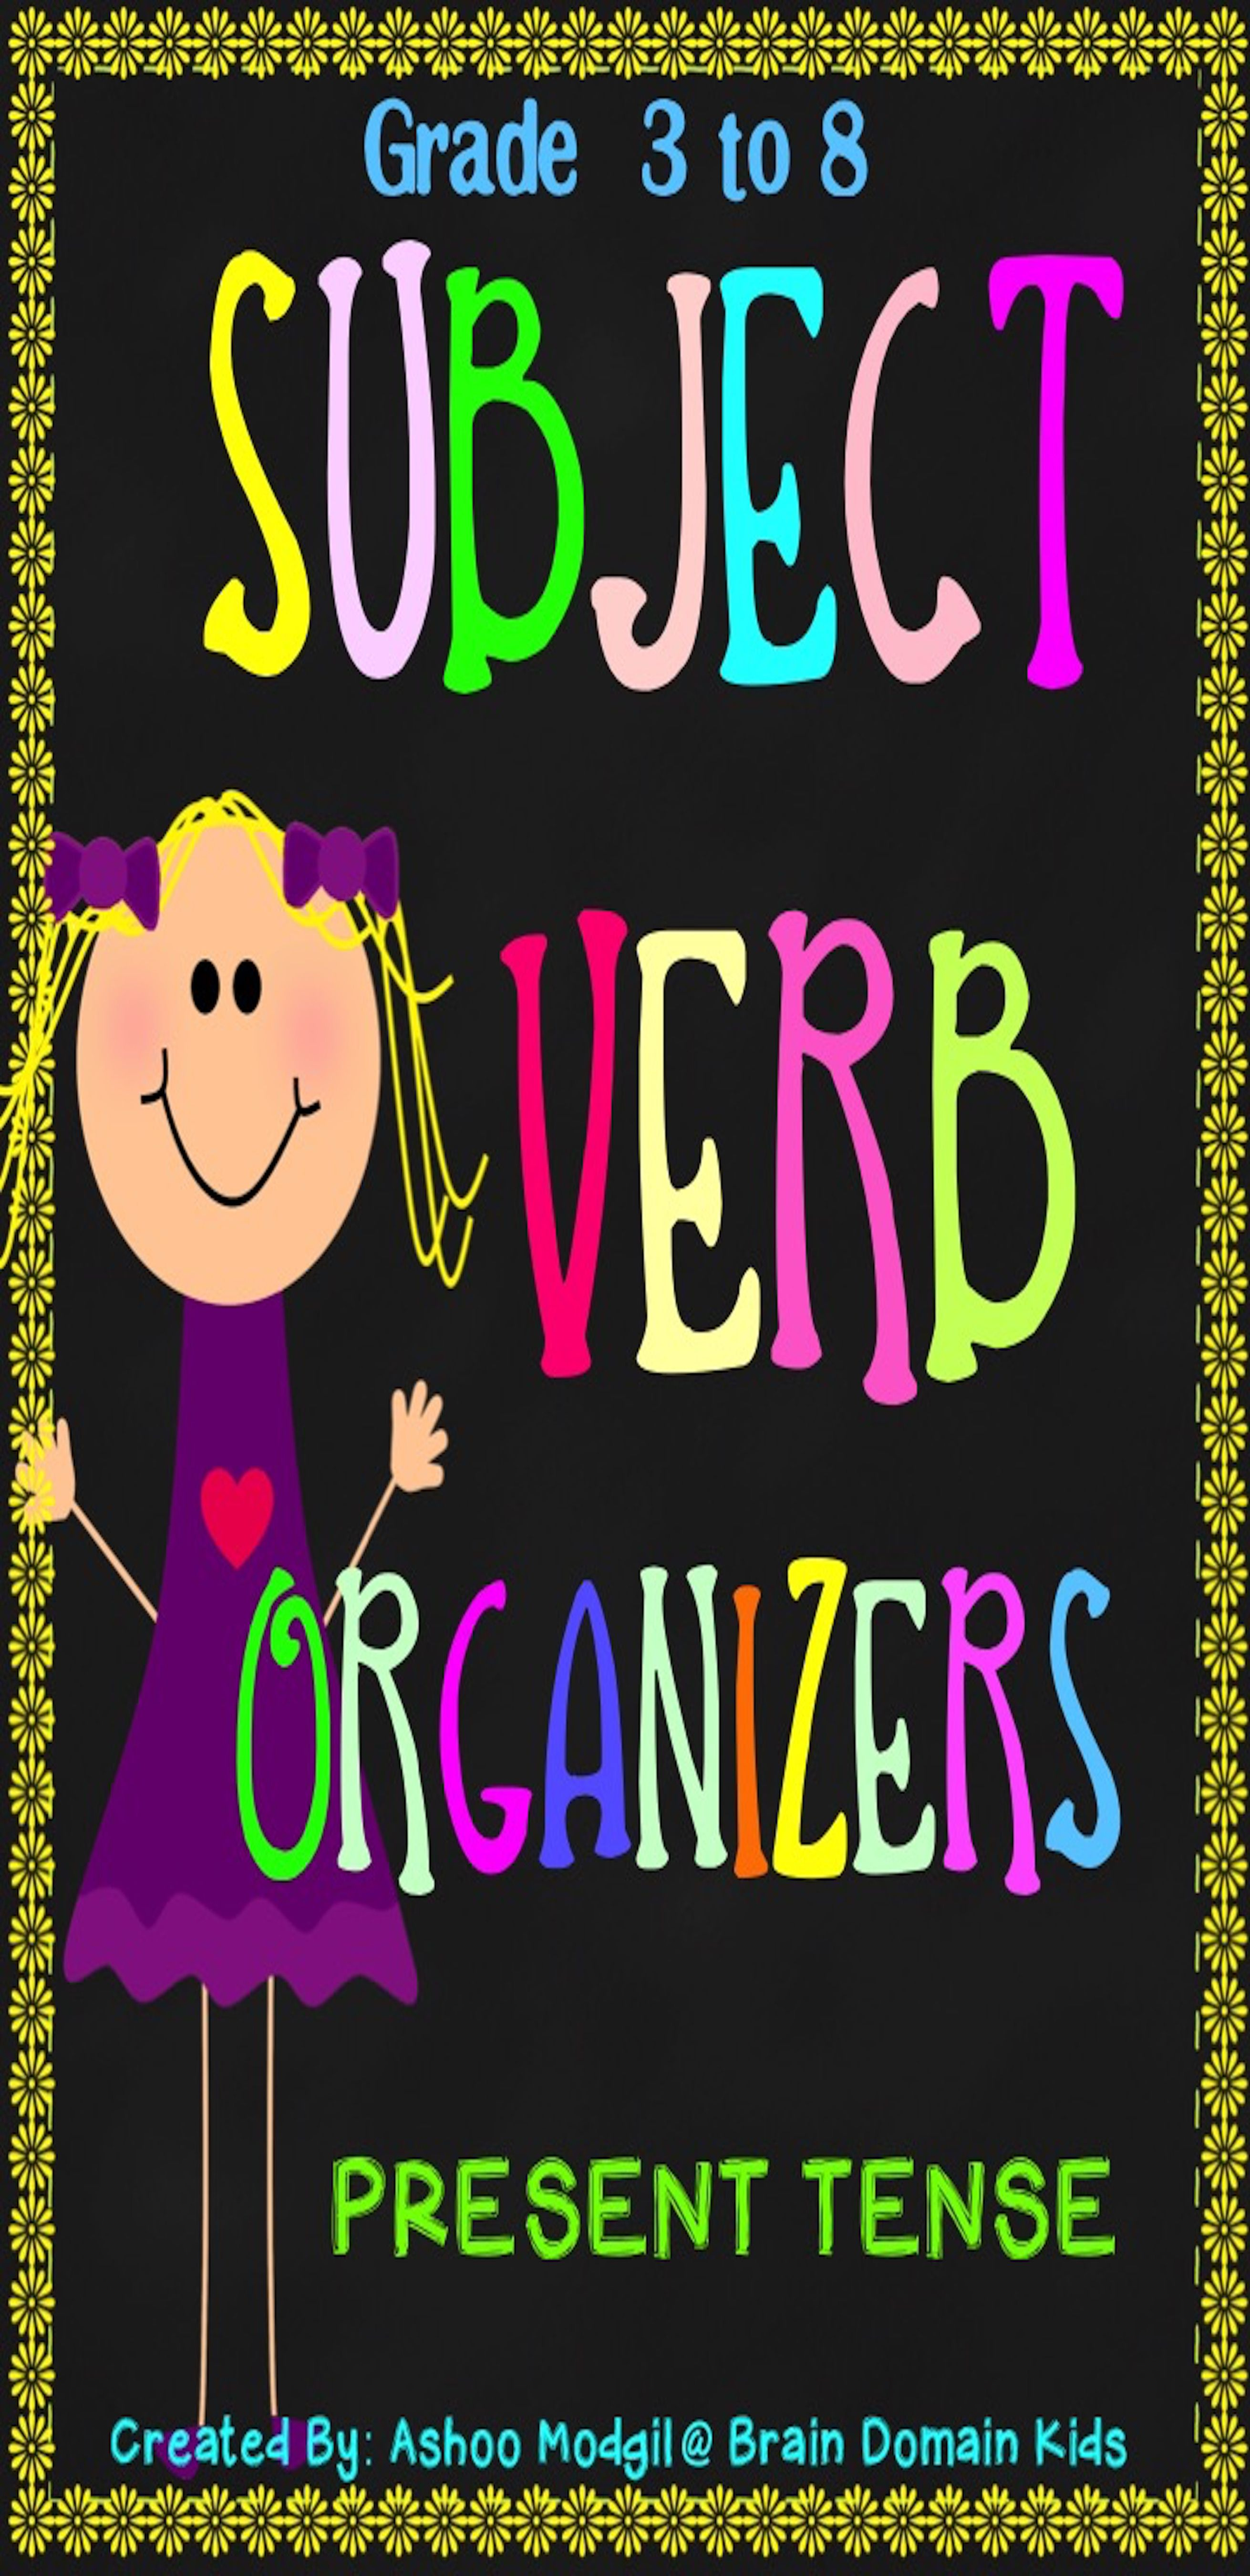 Subject Verb Agreement Organizers Are Great For Review